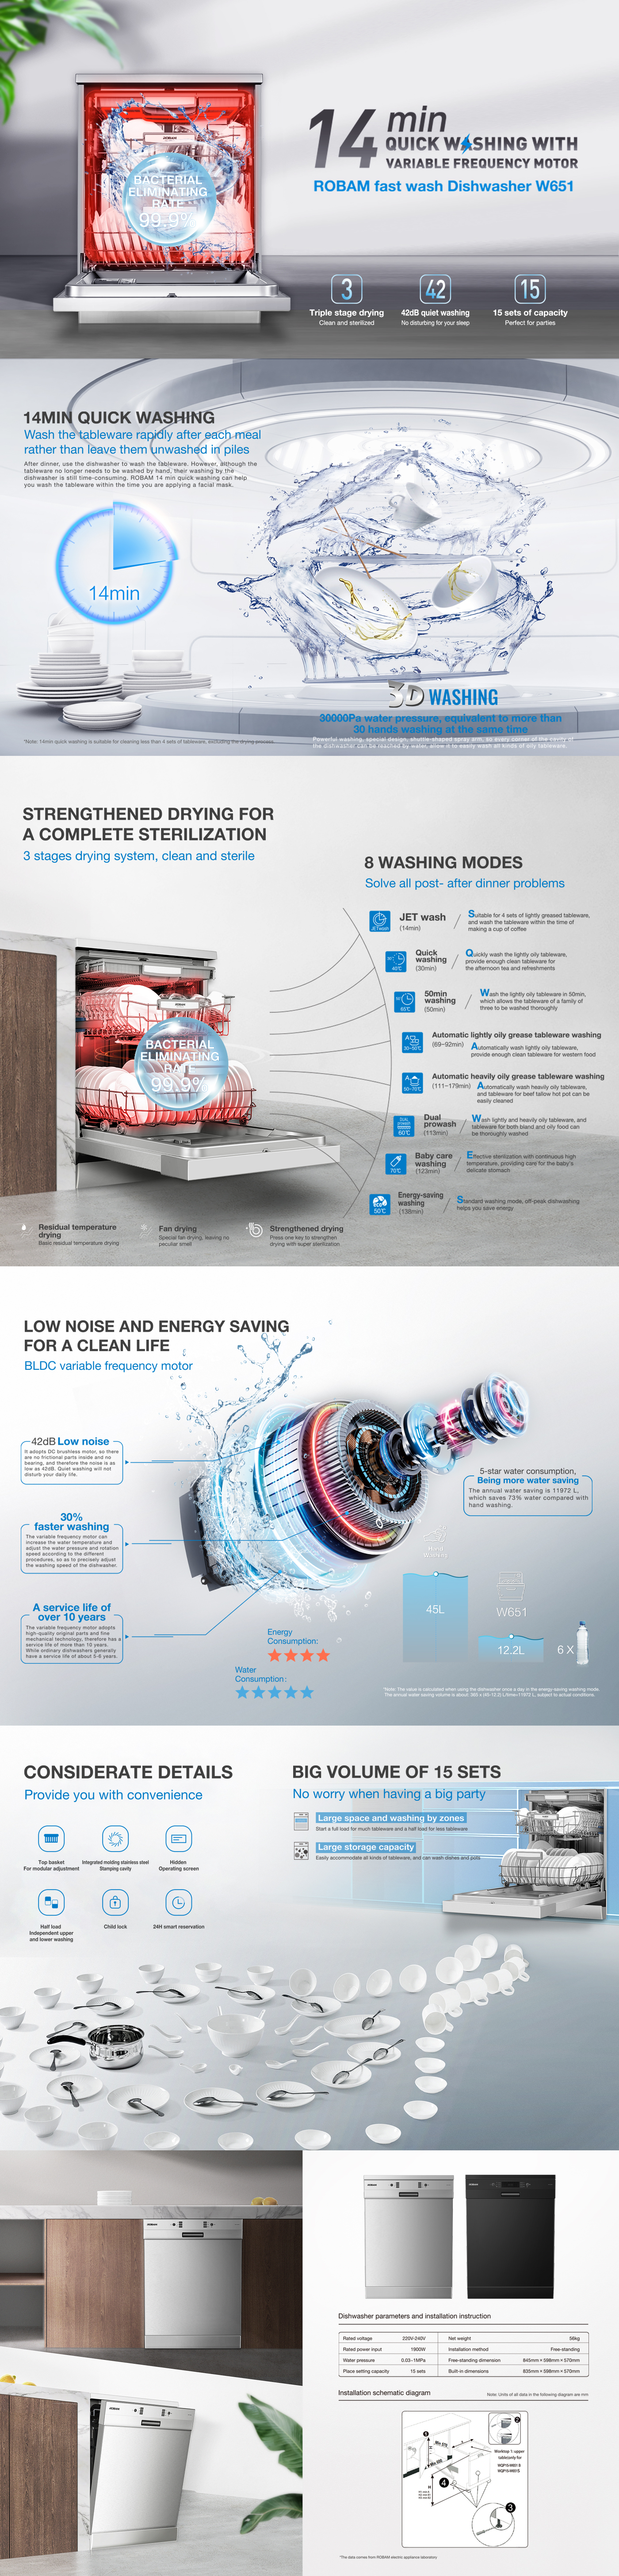 Create a new kitchen for the world ●14 min quick washing with variable frequency motor ●ROBAM fast washing Dishwasher W651 ●Bacterial Eliminating Rate 99.9% ●Triple stage drying ●Clean and sterilized ●42dB quiet washing ●No disturbing for your sleep ●15 sets of tableware(capacity) ●Tableware for gatherings (perfect for parties) ●A high-end kitchen appliance leader in the world ●14 min quick washing